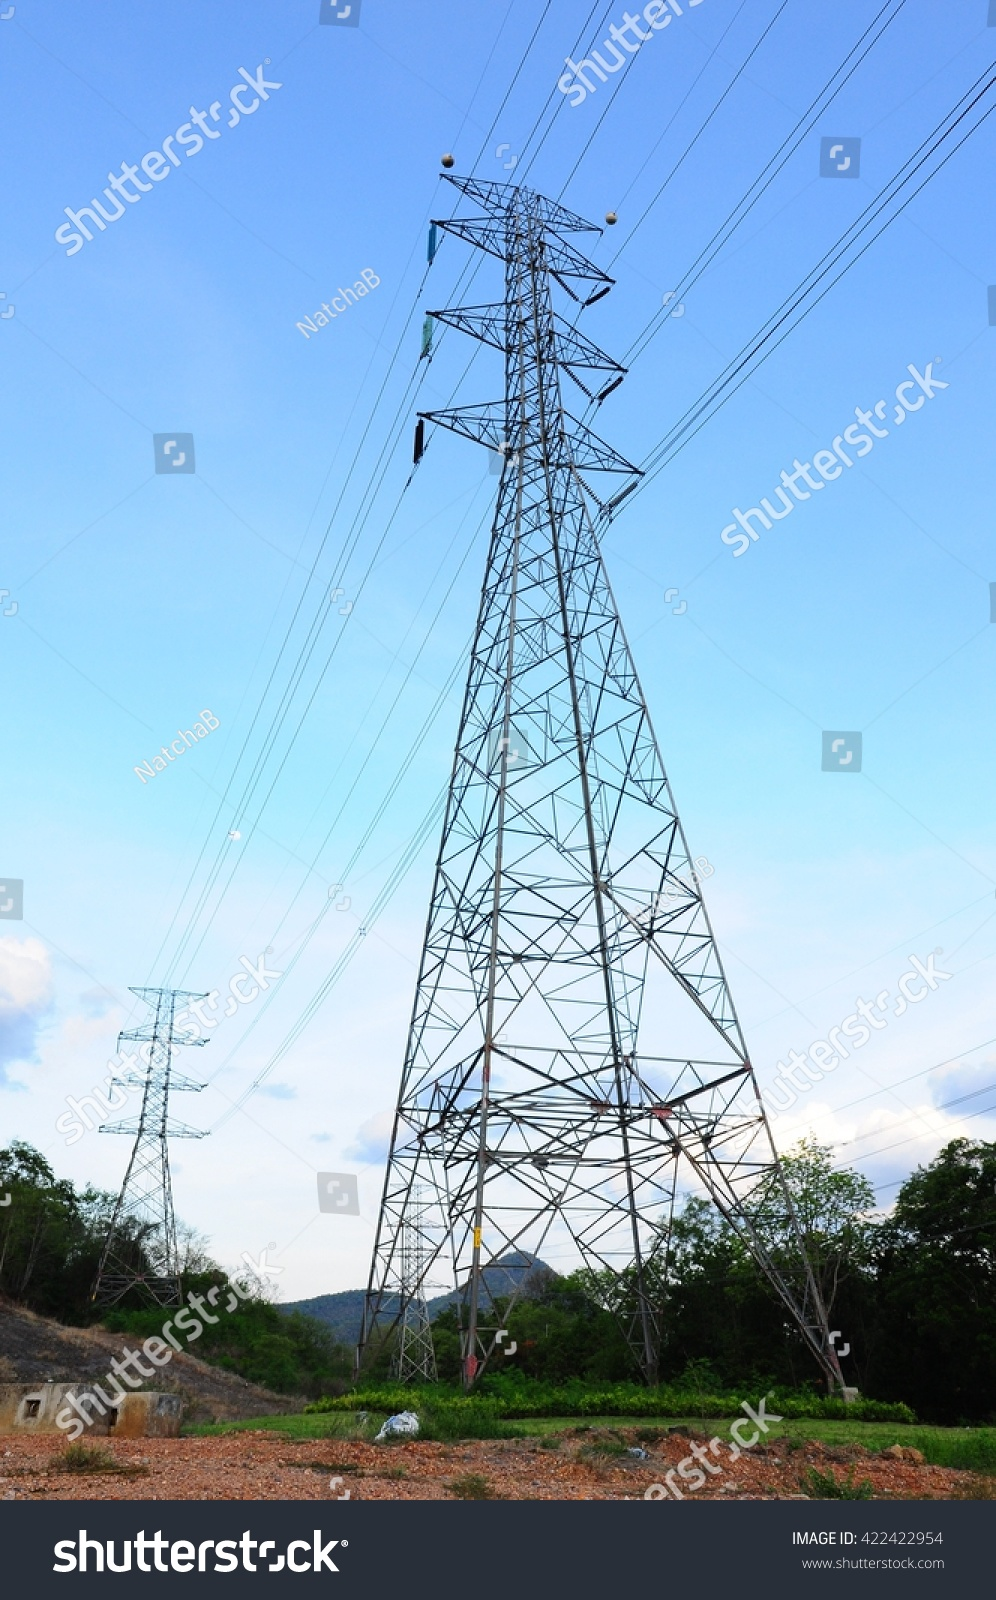 230 Kv Transmission Line Lineman Training Stock Photo Edit Now 422422954